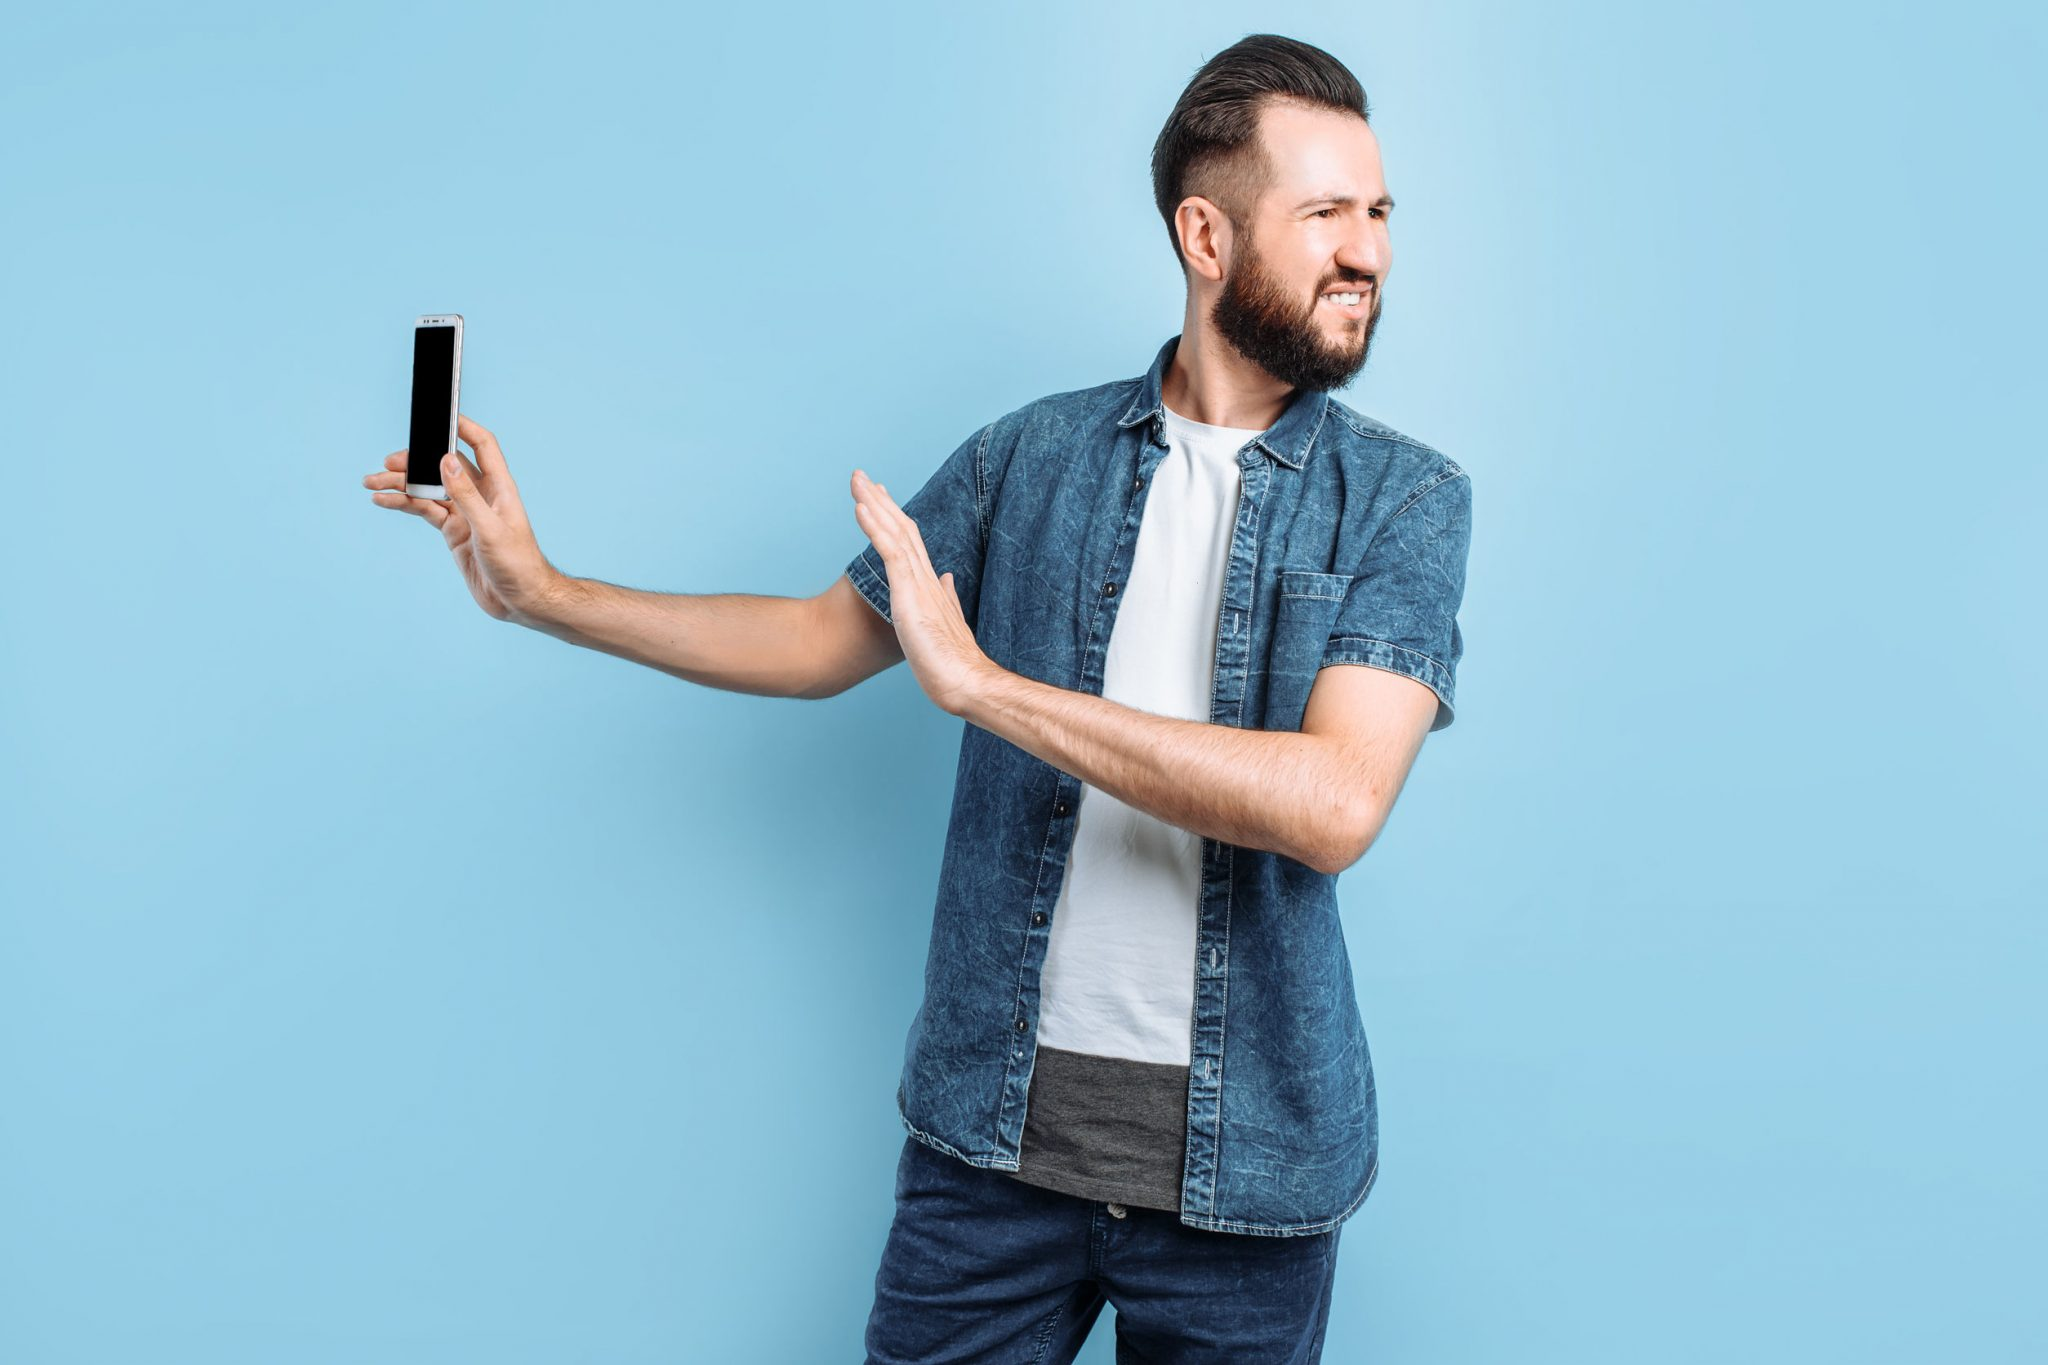 An irritated young man keeps his smartphone away from his ear. An angry person does not want to listen to a conversation on the phone, standing on an isolated blue background